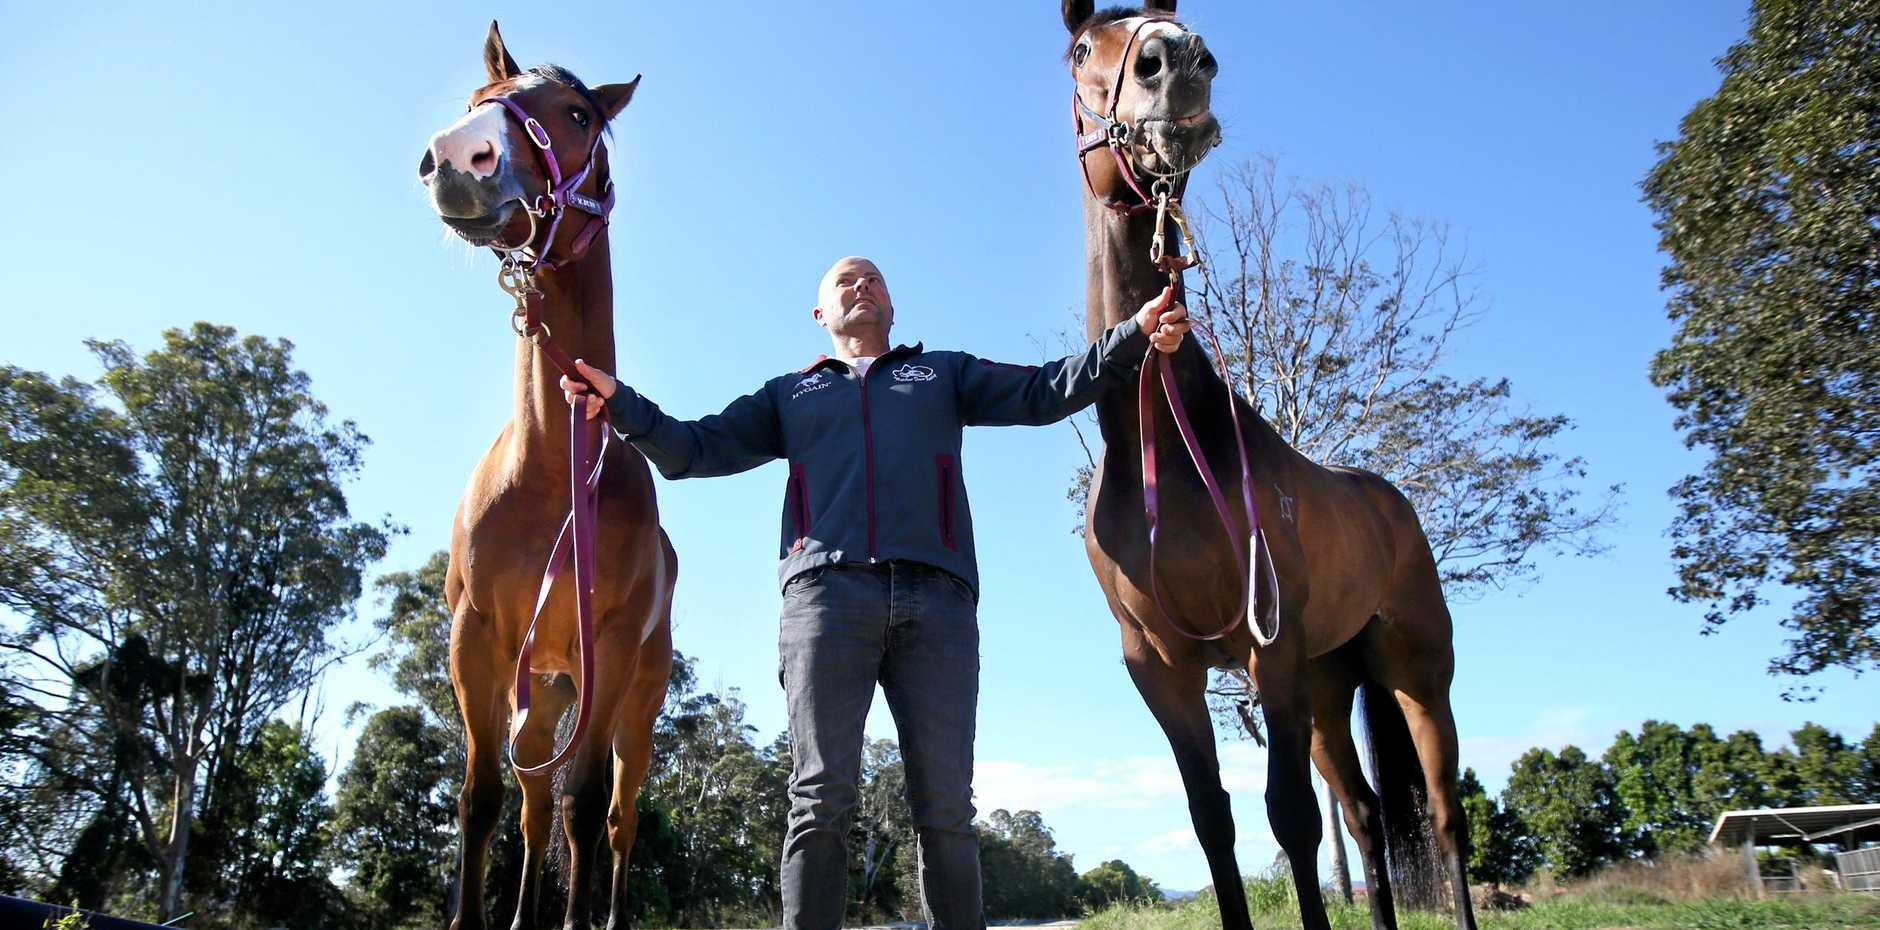 Murwillumbah horse-trainer Matt Dunn has negotiated two horses into next Sunday's 'The Kosciuszko' race at Randwick, which is being billed as the world's richest country thoroughbred race.